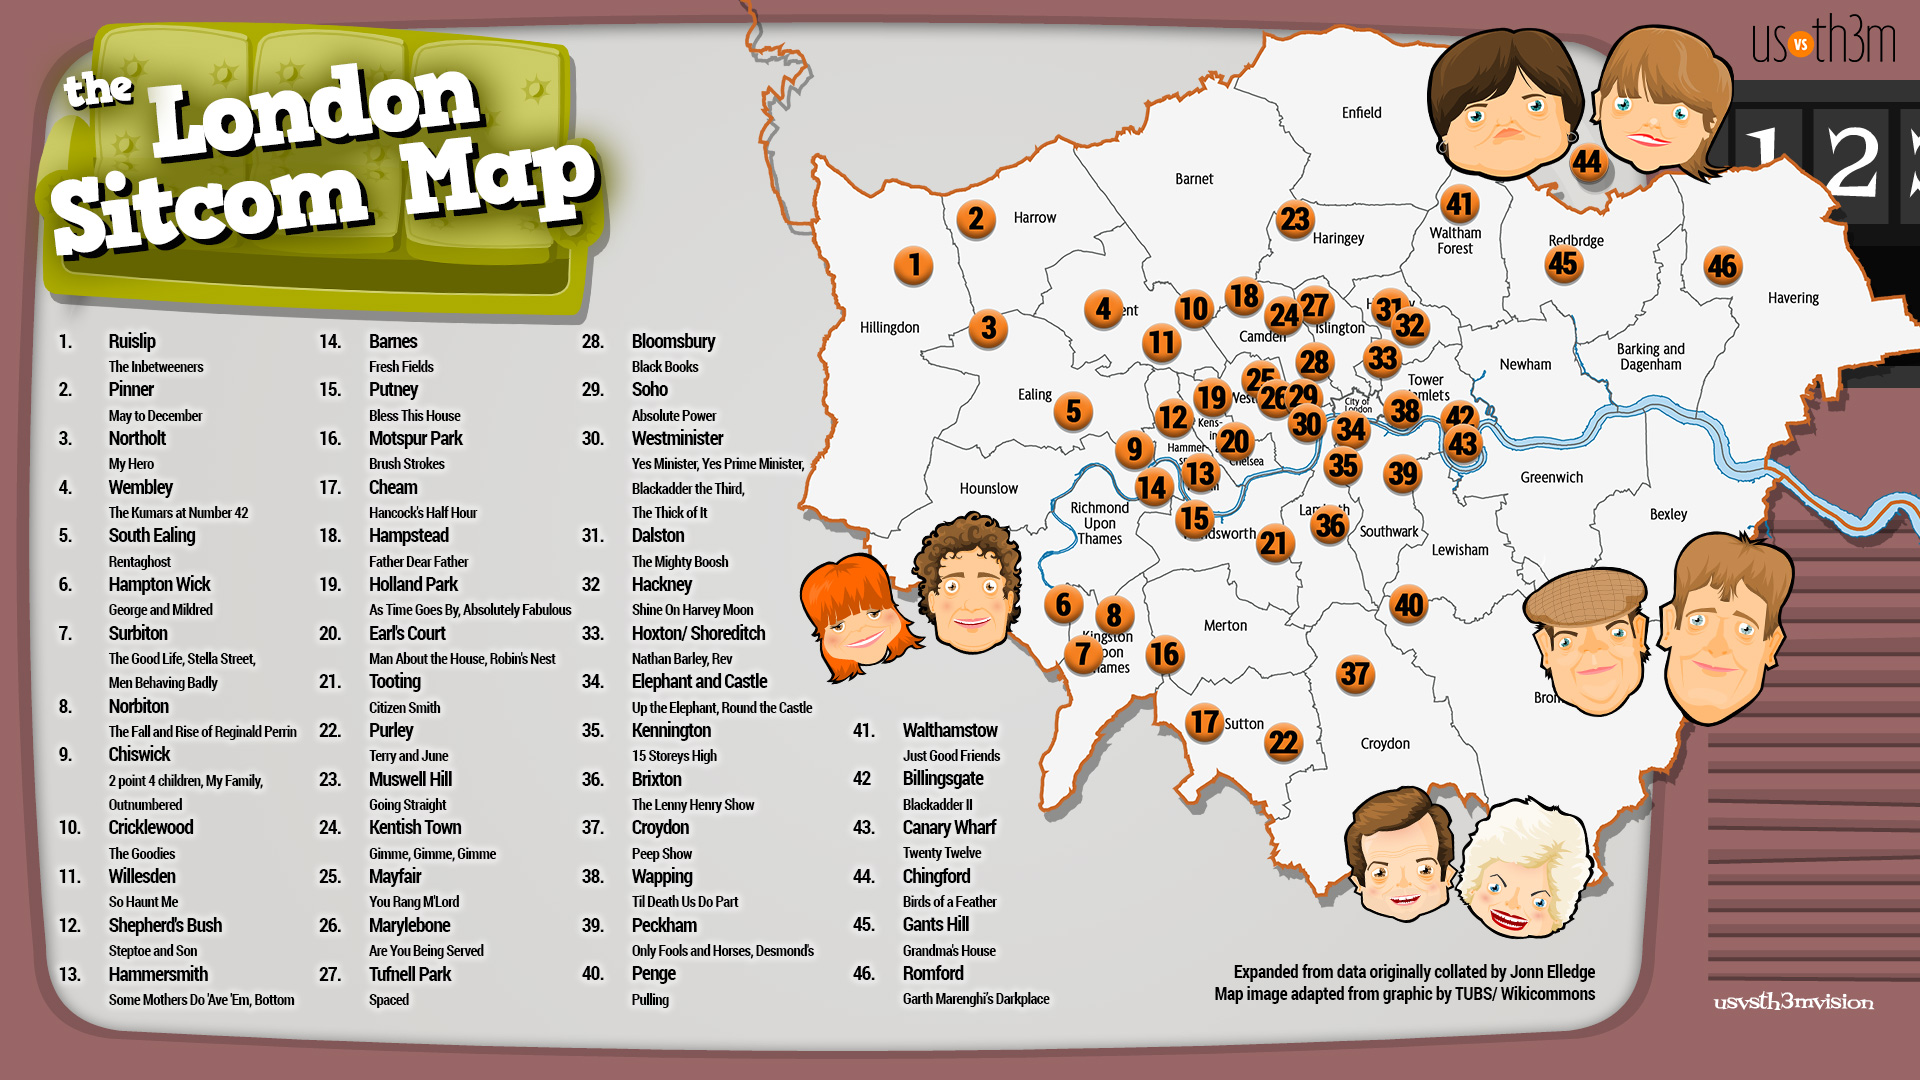 usvsth3m-london-sitcom-map-full-size3